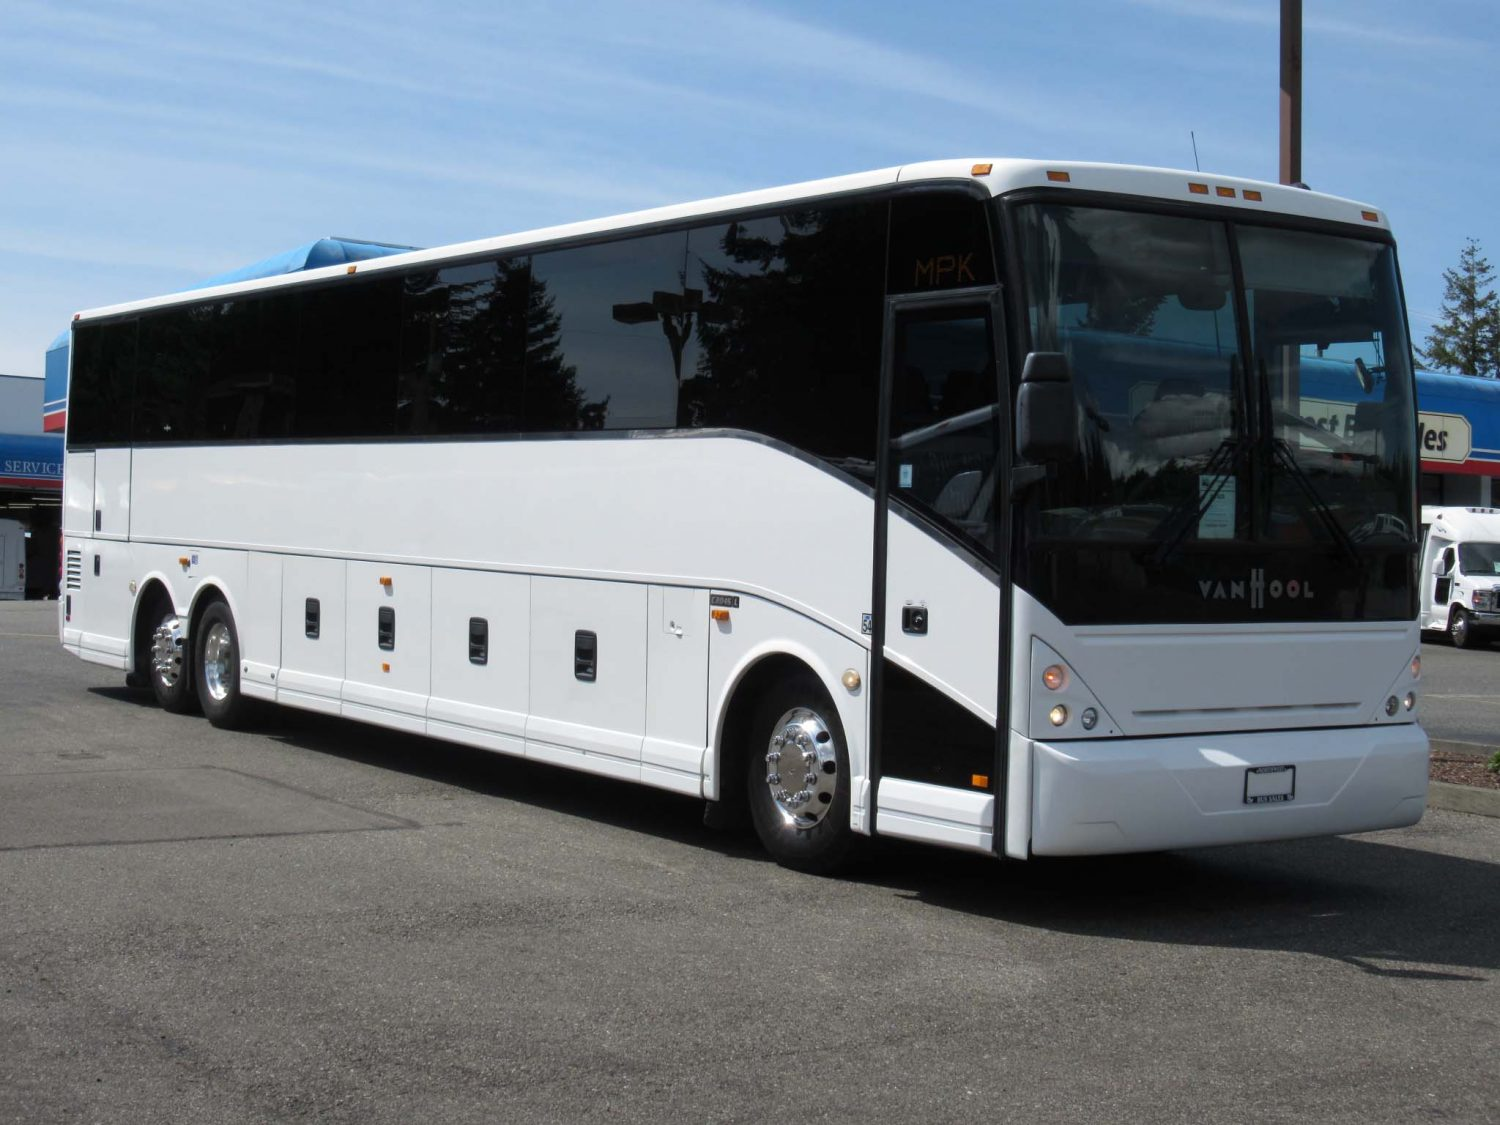 Used & New Coach Buses for Sale - Big Passenger Buses | Las